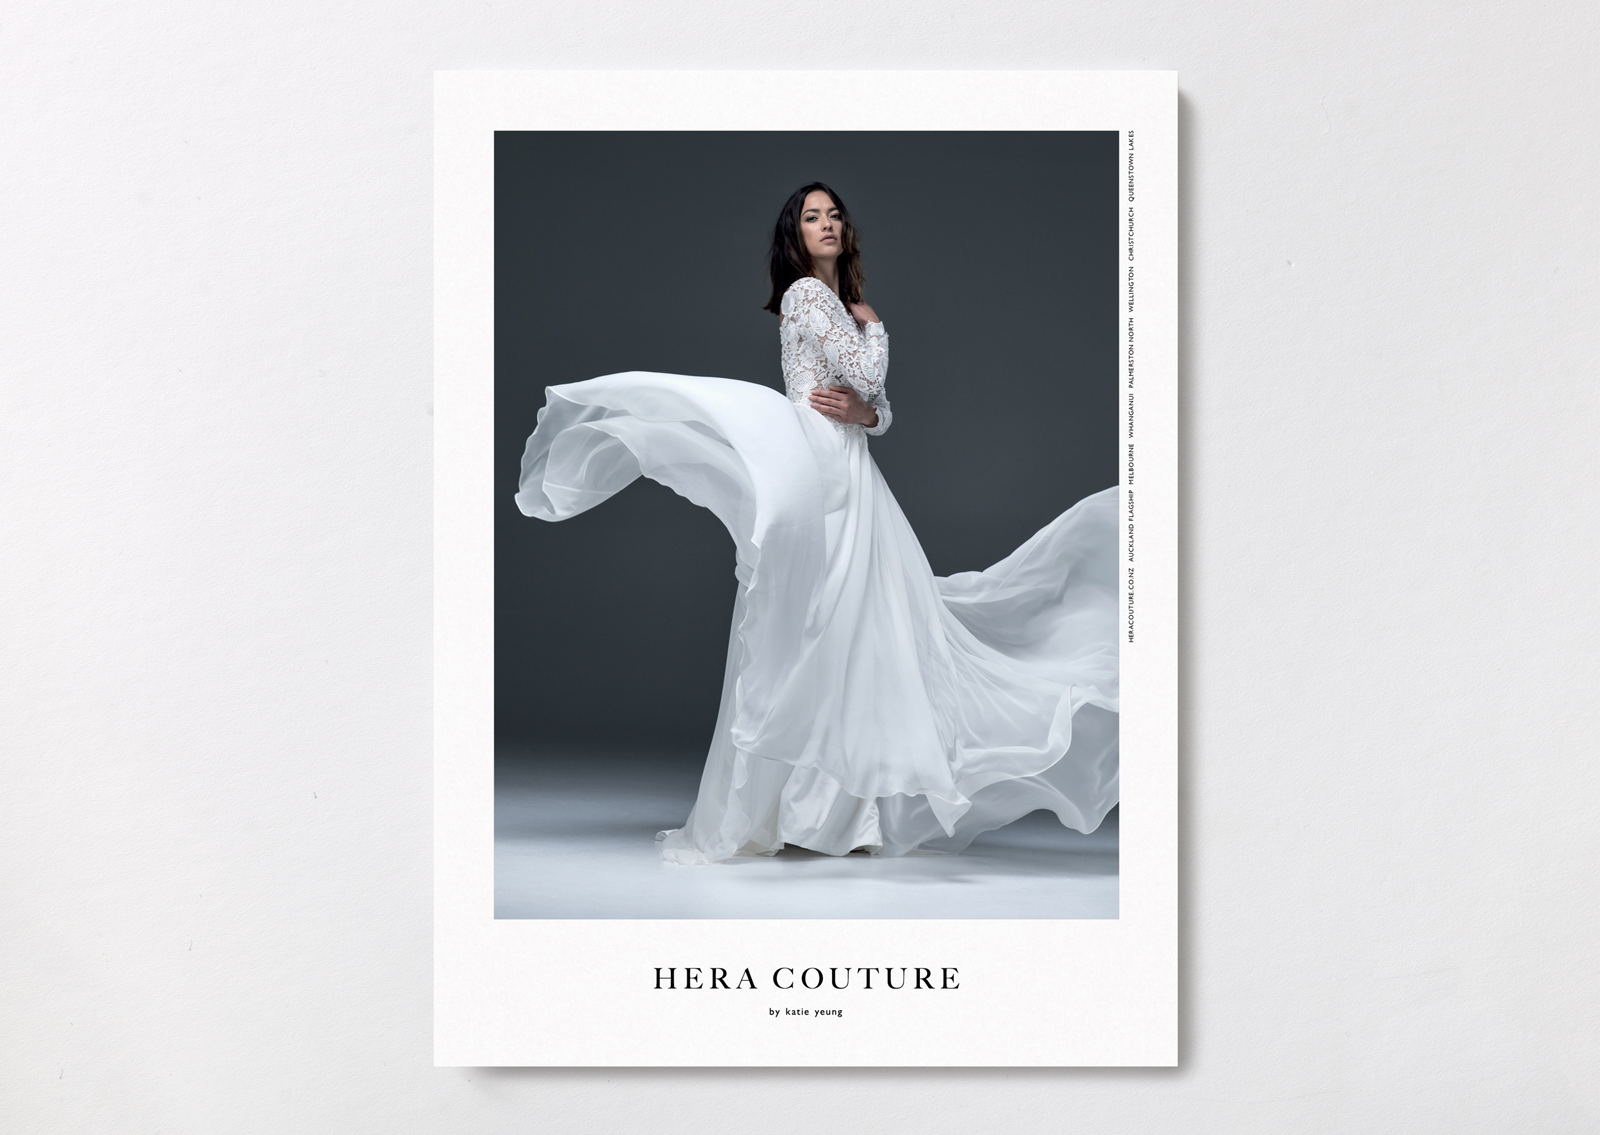 Hera Couture brand postcard – shows confident bride in dramatic flowing gown